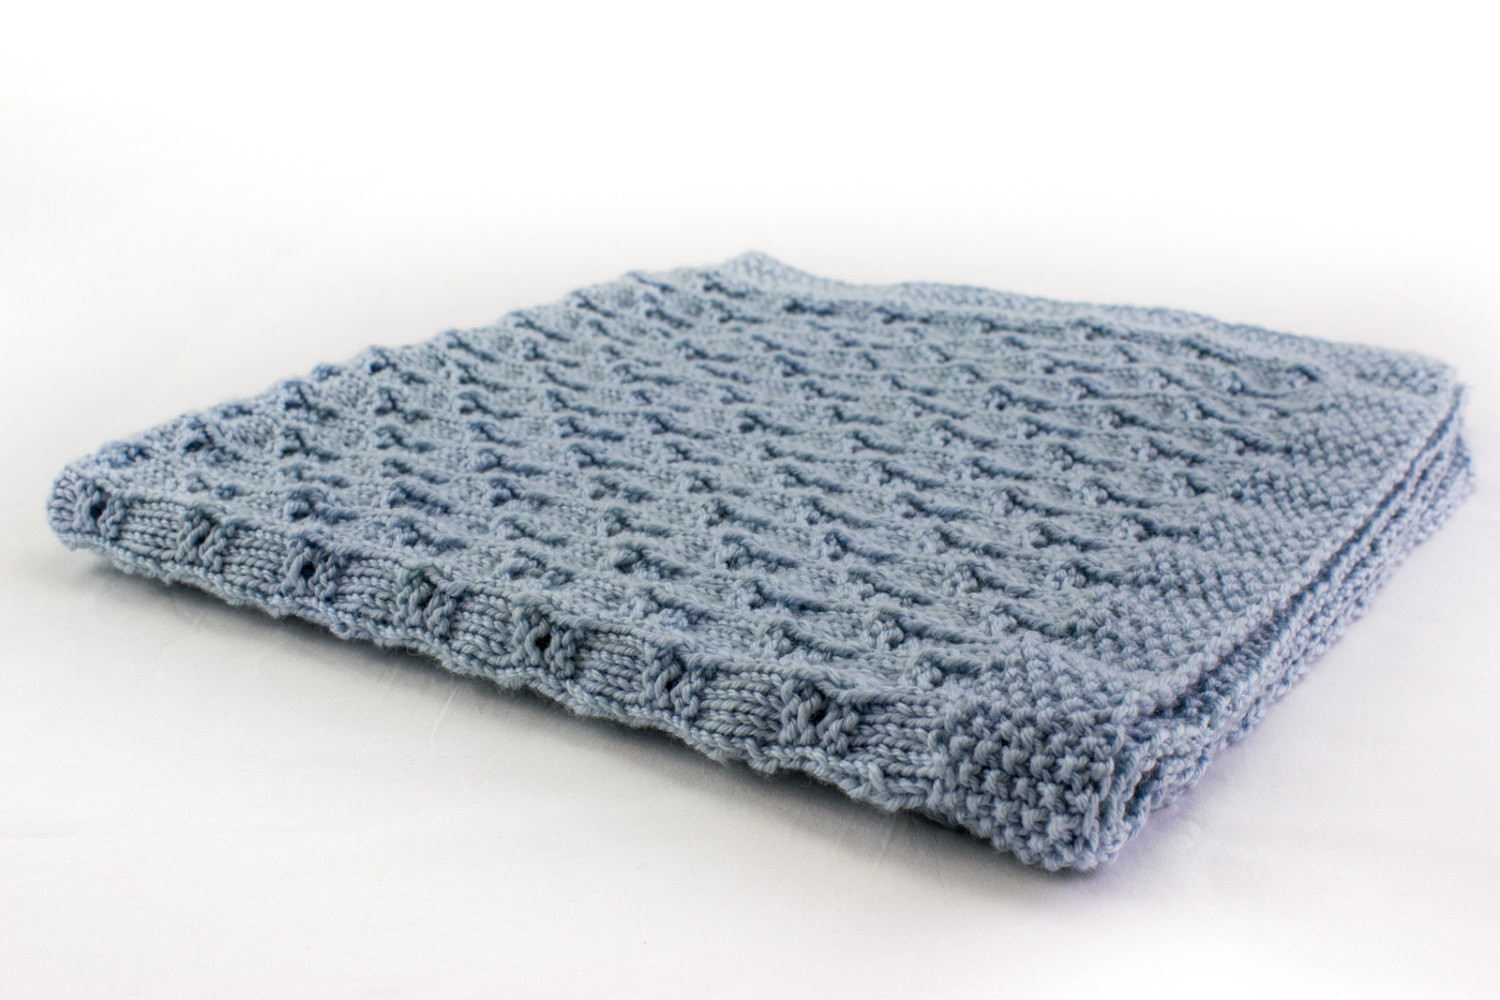 Knitted Baby Blanket Fresh 8 Ply Baby Blanket Knitting Patterns Free Of Amazing 46 Pictures Knitted Baby Blanket